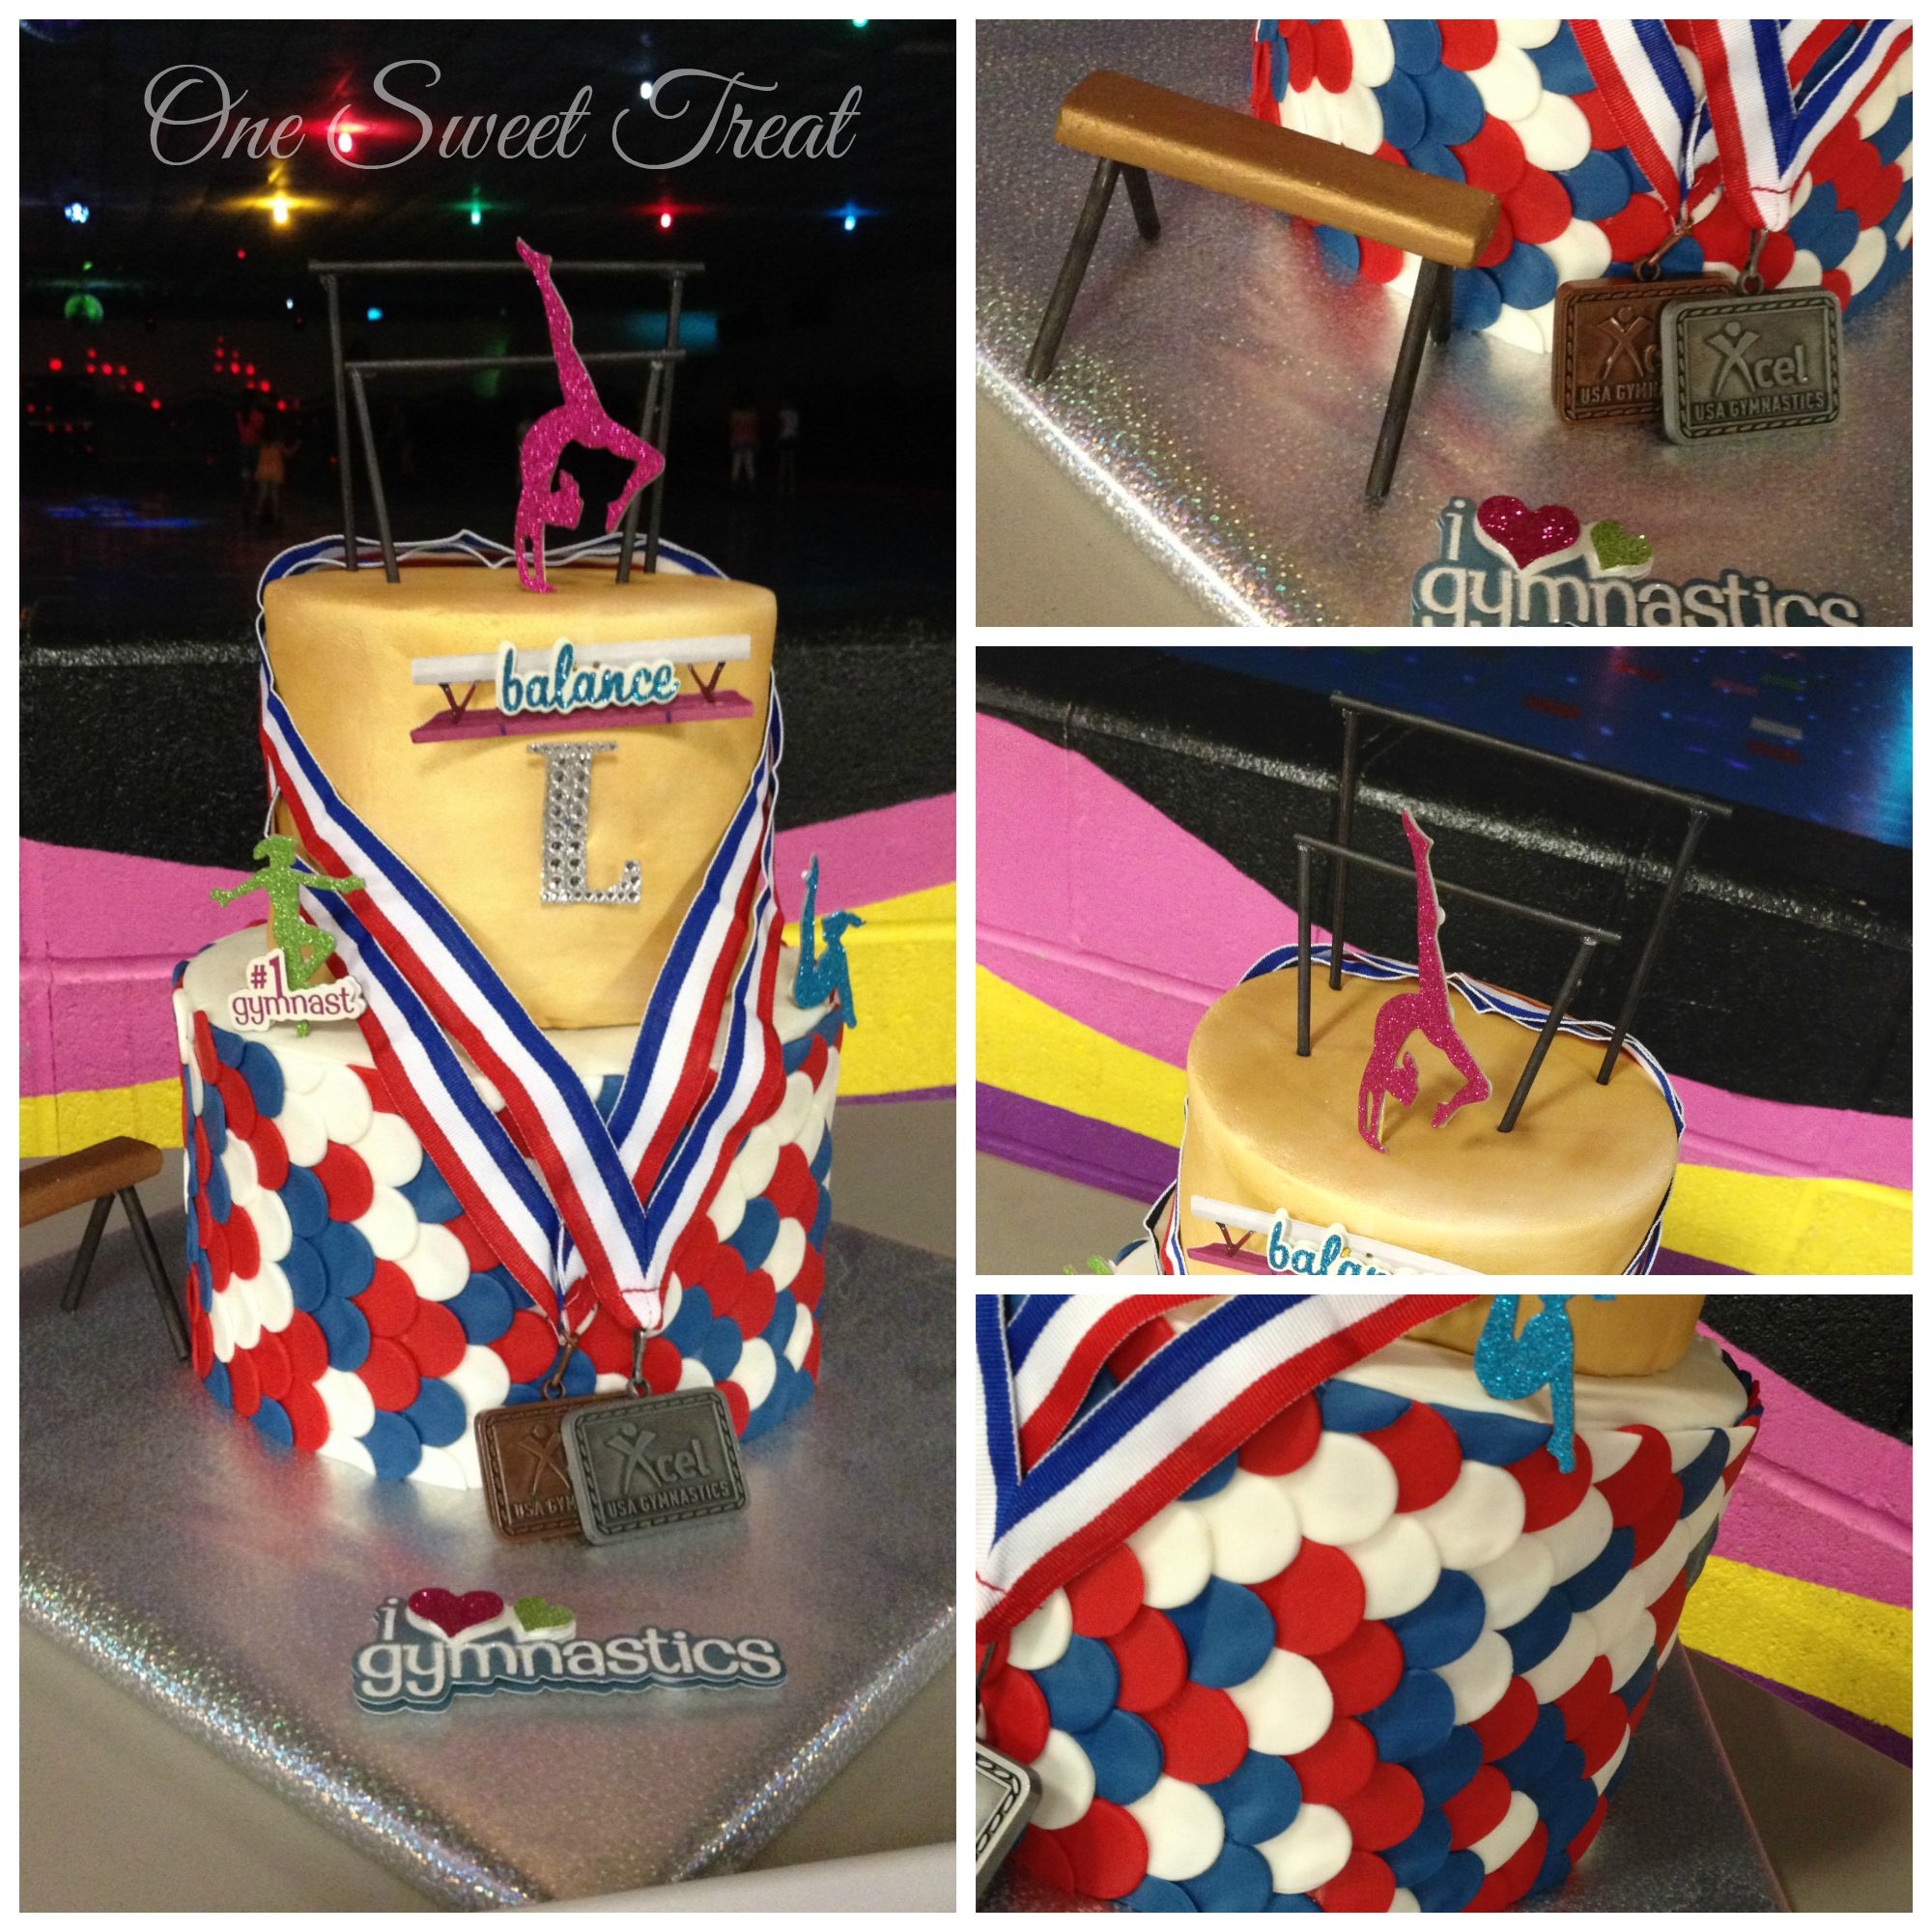 Gymnastics Cake 2015 Collage.jpg